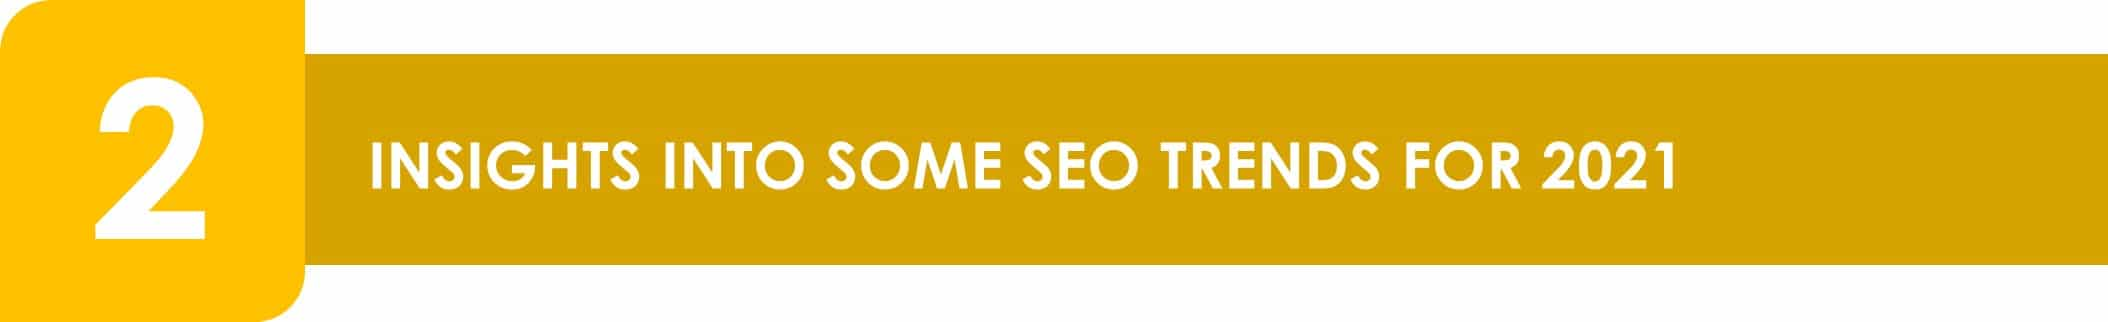 Insights_into_some_SEO_trends_for_2021